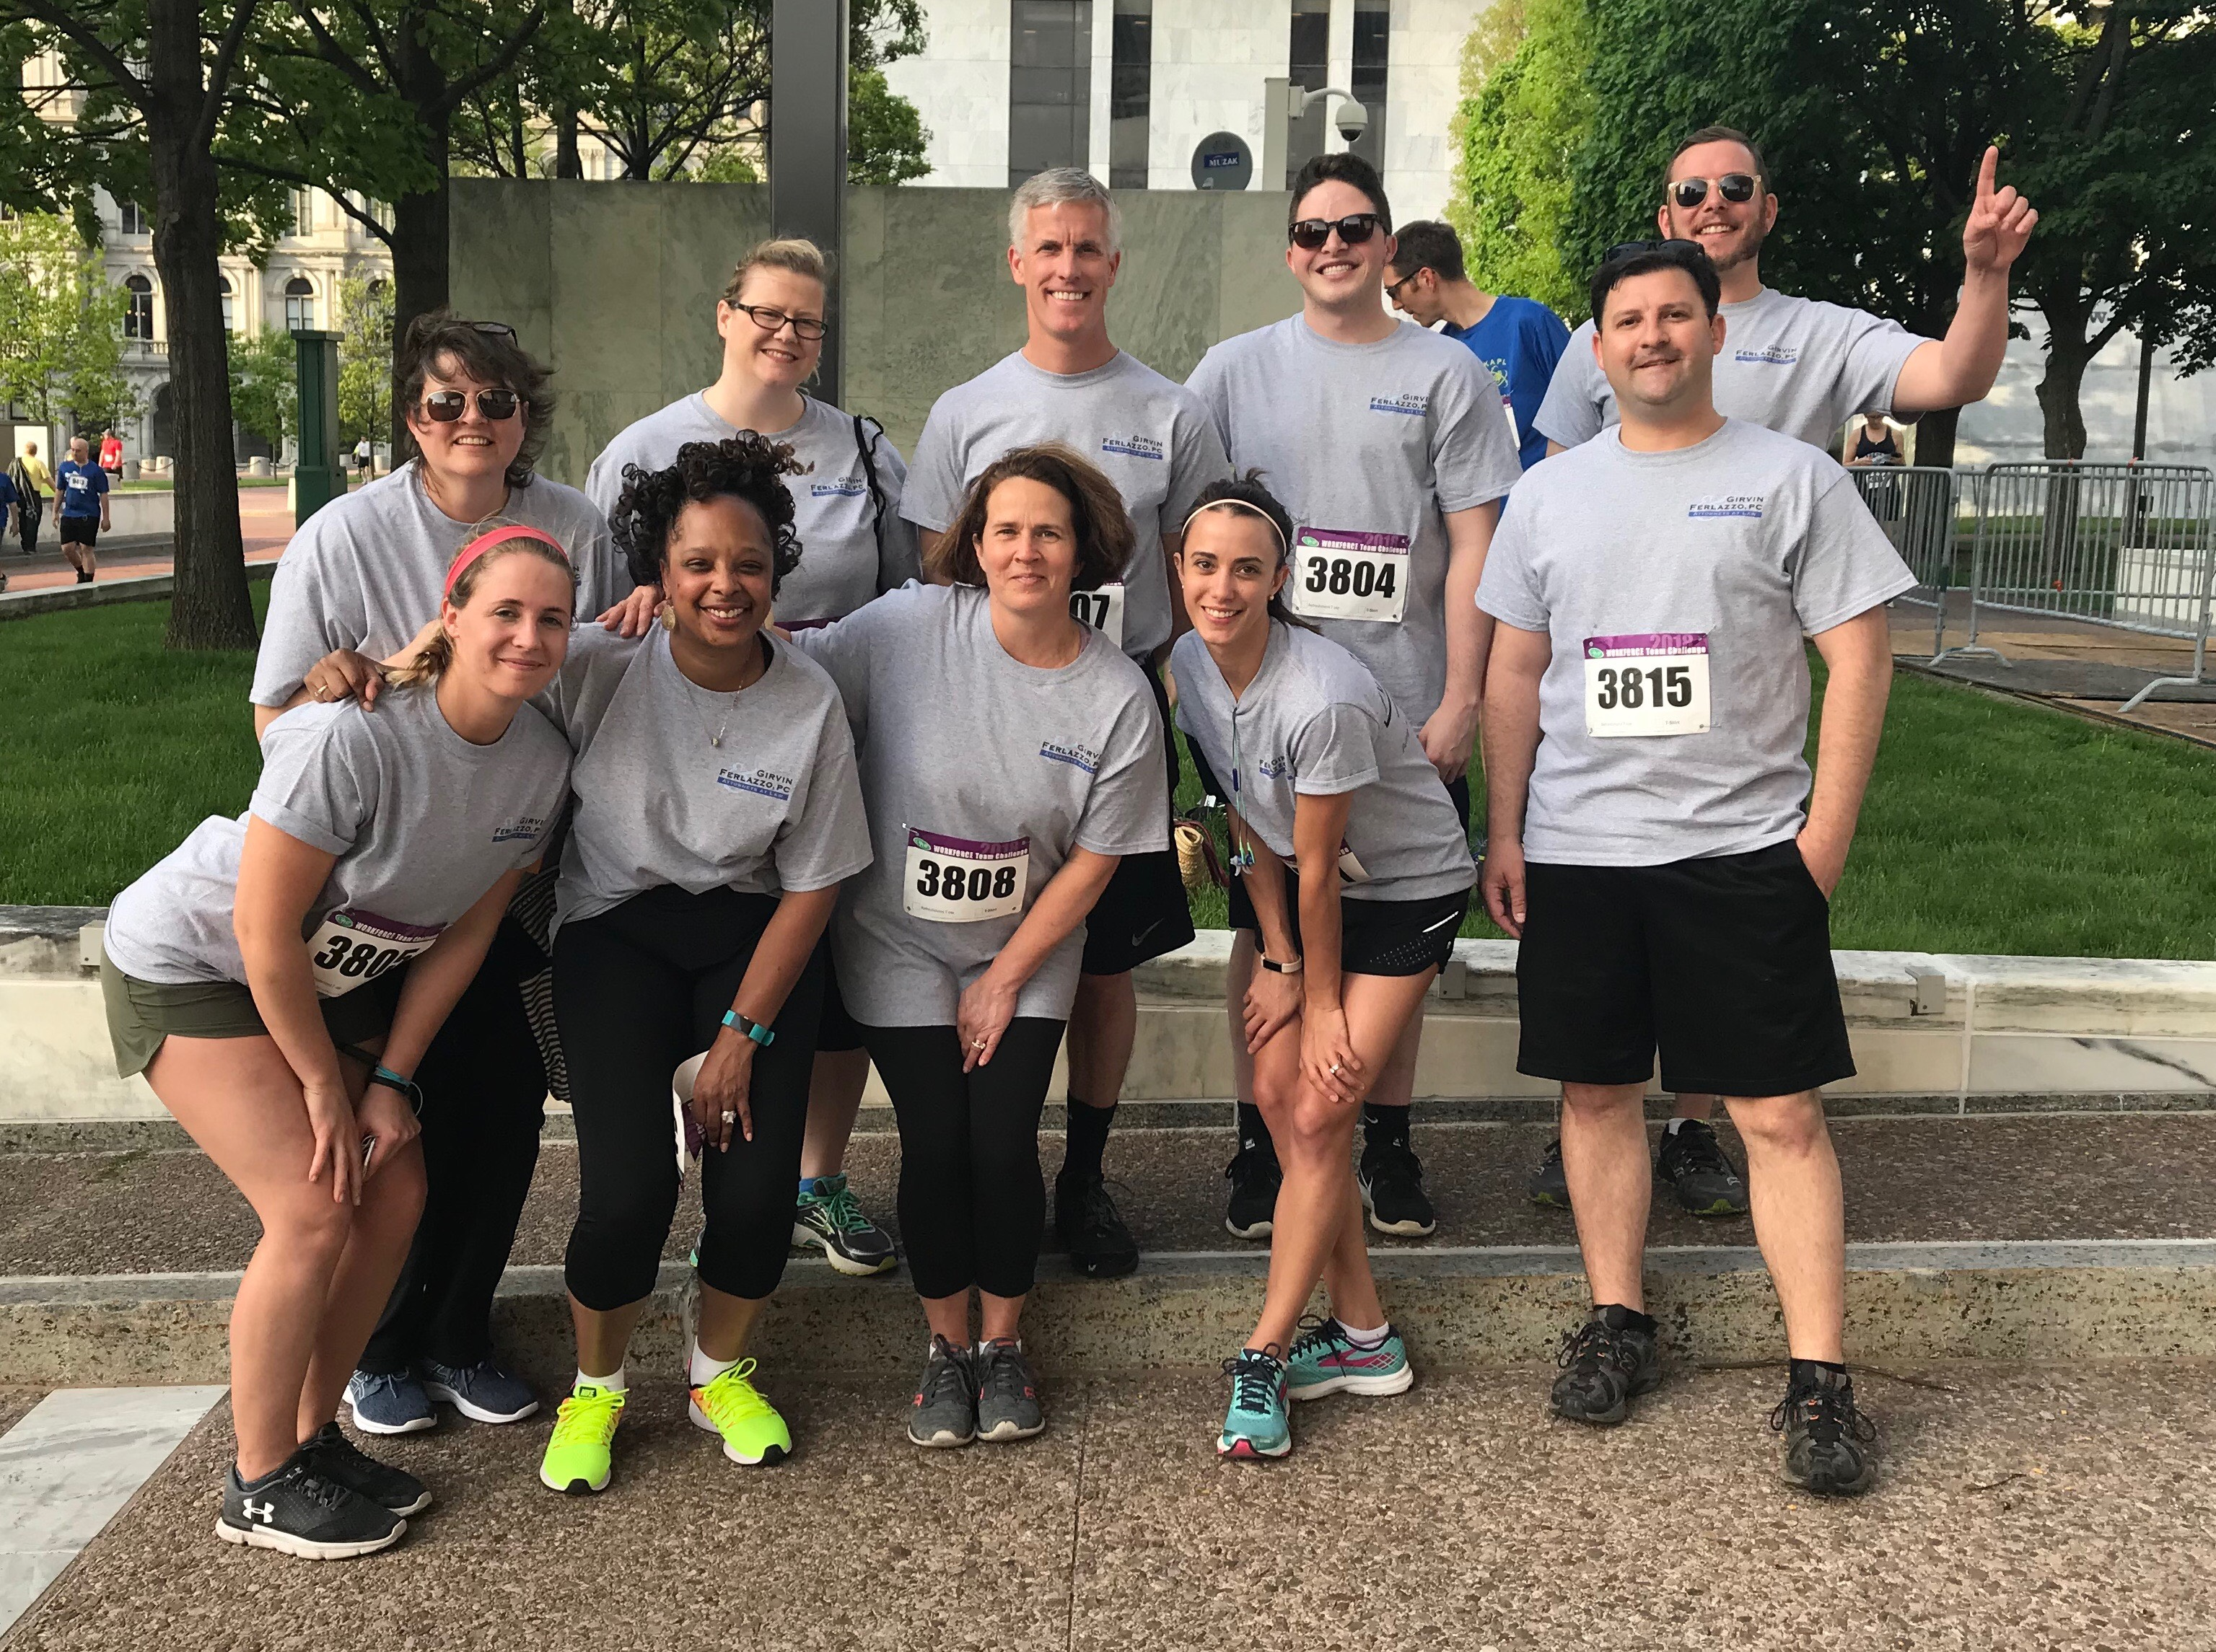 Local attorneys from Girvin & Ferlazzo participate in CDPHP Workforce Team Challenge